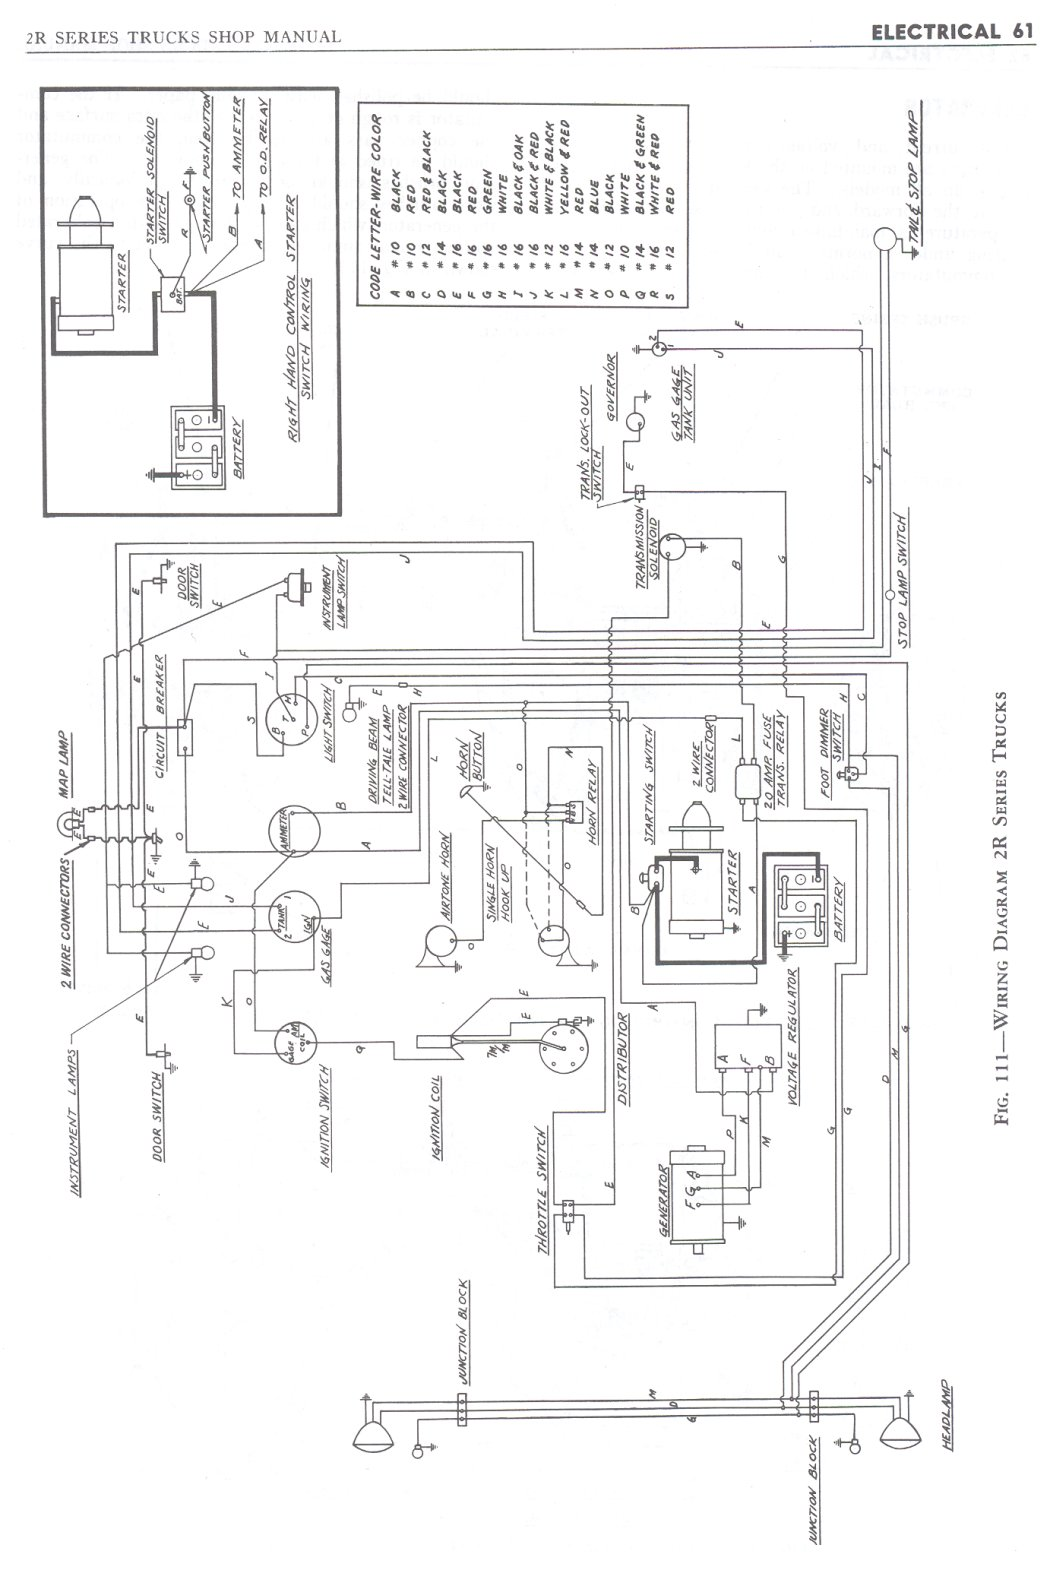 1950 Studebaker Champion Wiring Diagrams Wiring Diagram For A 3910 Ford Tractor Begeboy Wiring Diagram Source